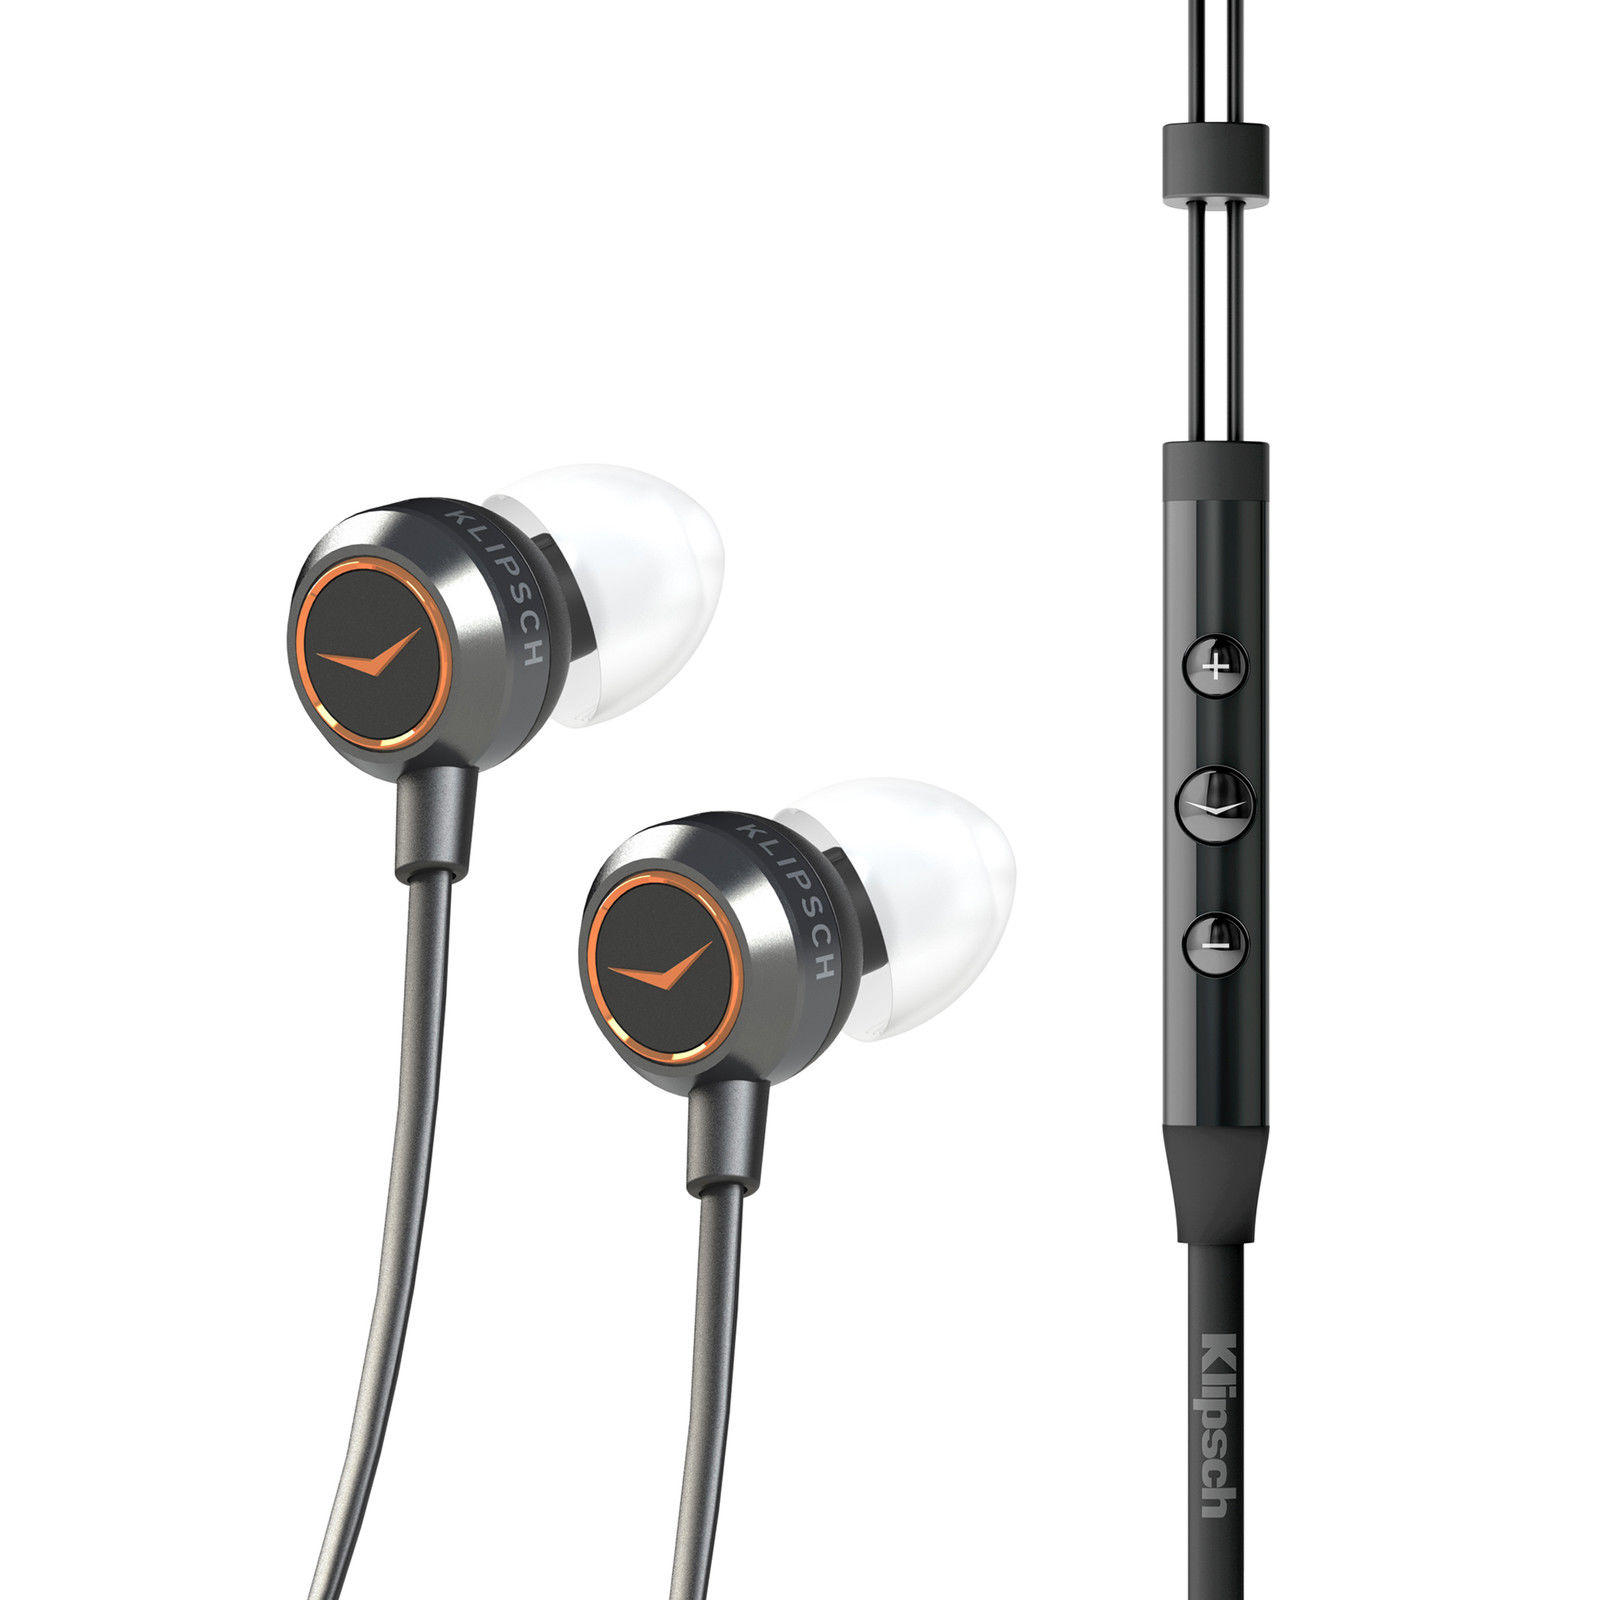 Klipsch X4i In-Ear Headphones with iPod/iPhone Controls Silver/Black